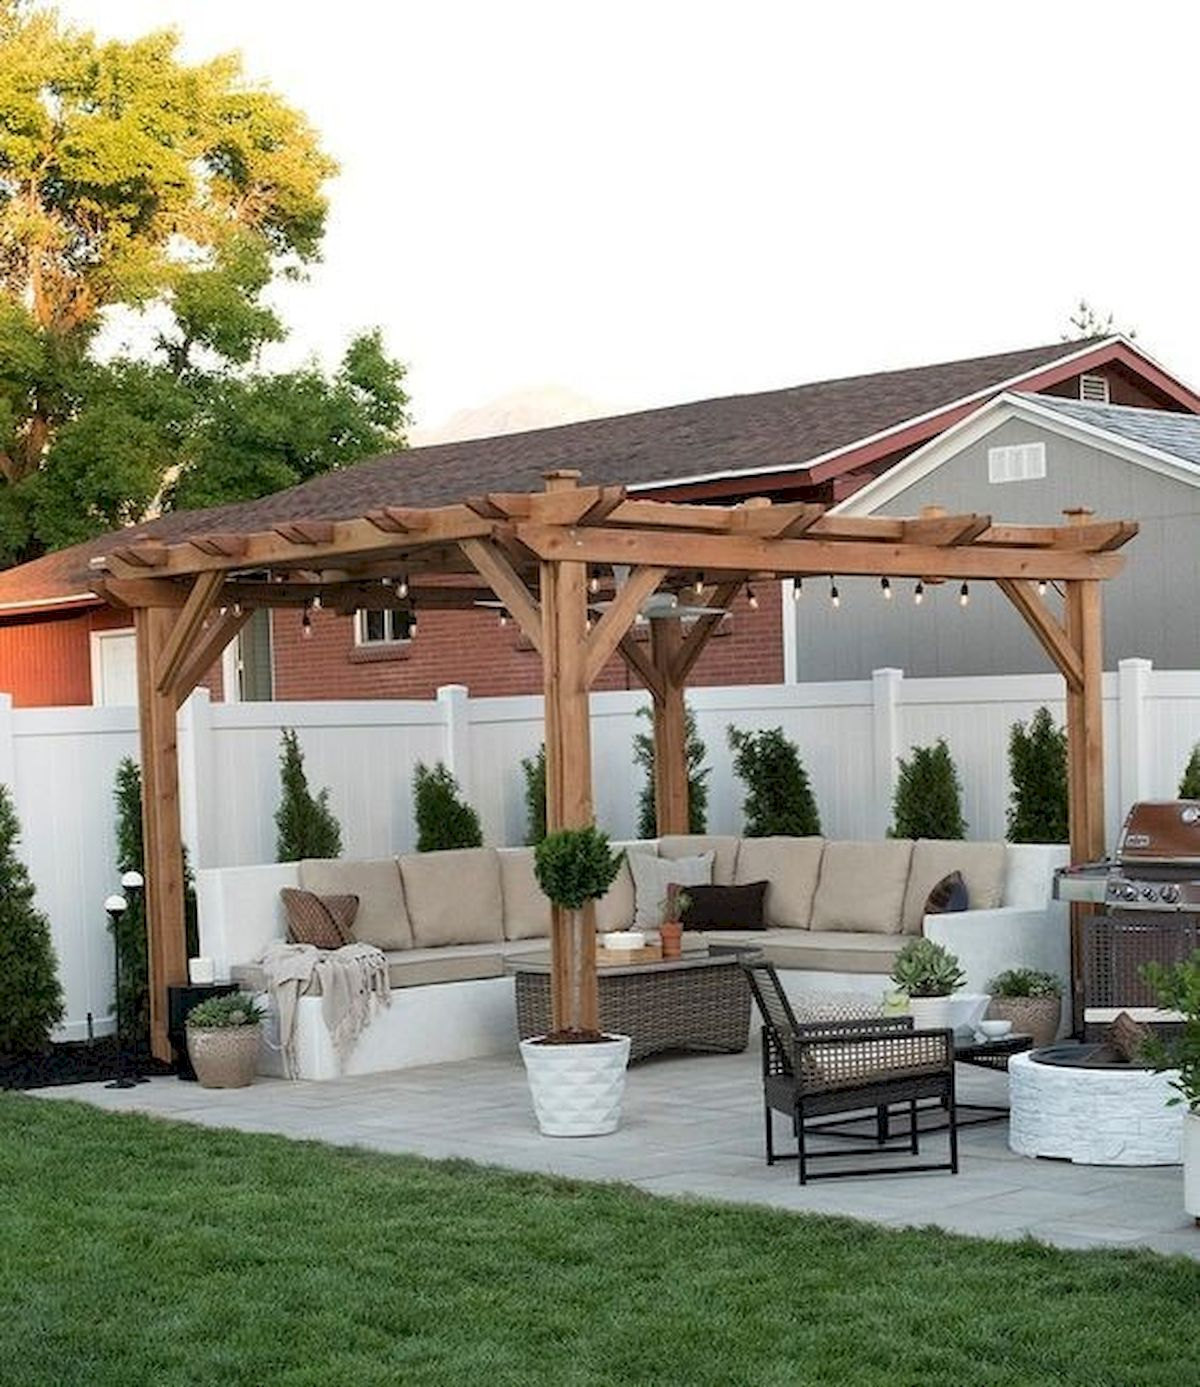 55 Wonderful Pergola Patio Design Ideas - Googodecor on Patios Designs  id=28809